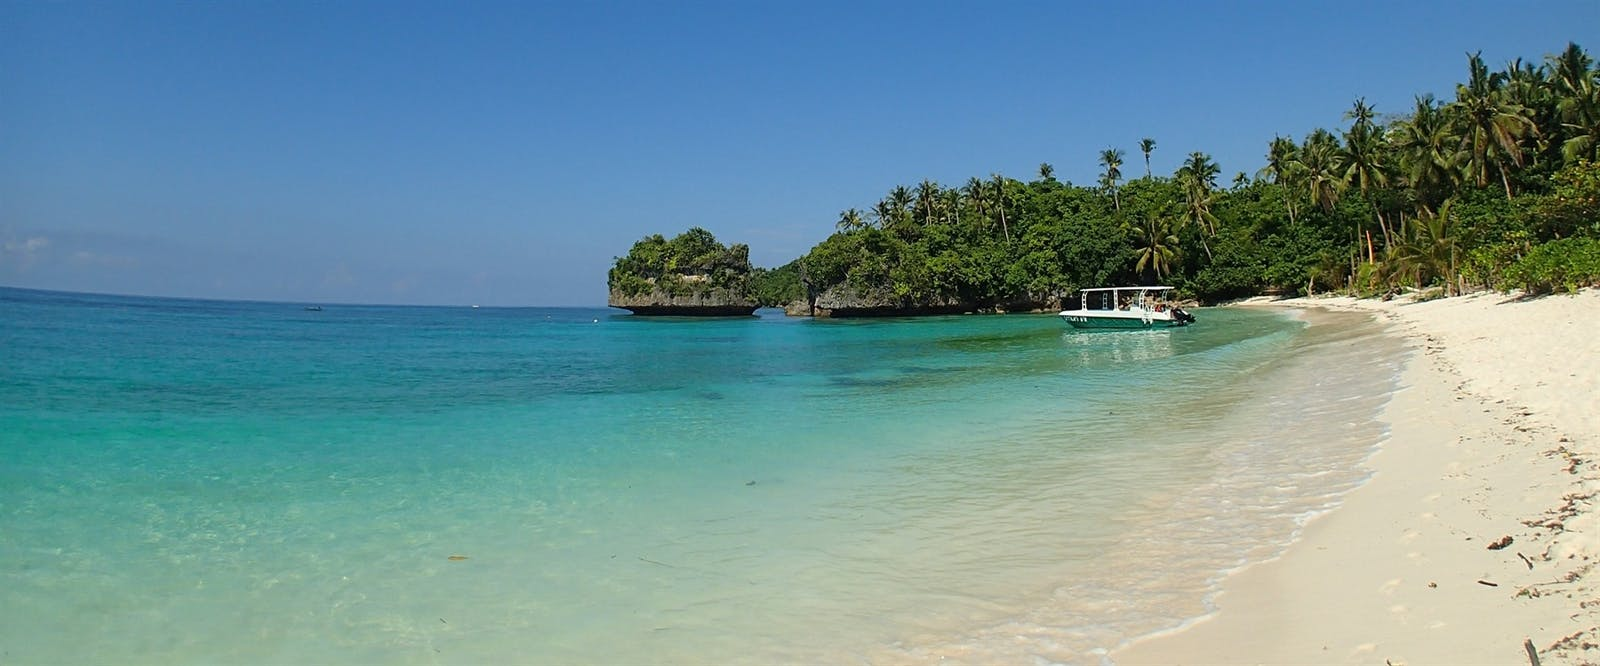 300 Metre Private White Sand Beach at Amun Ini Beach Resort & Spa, Philippines